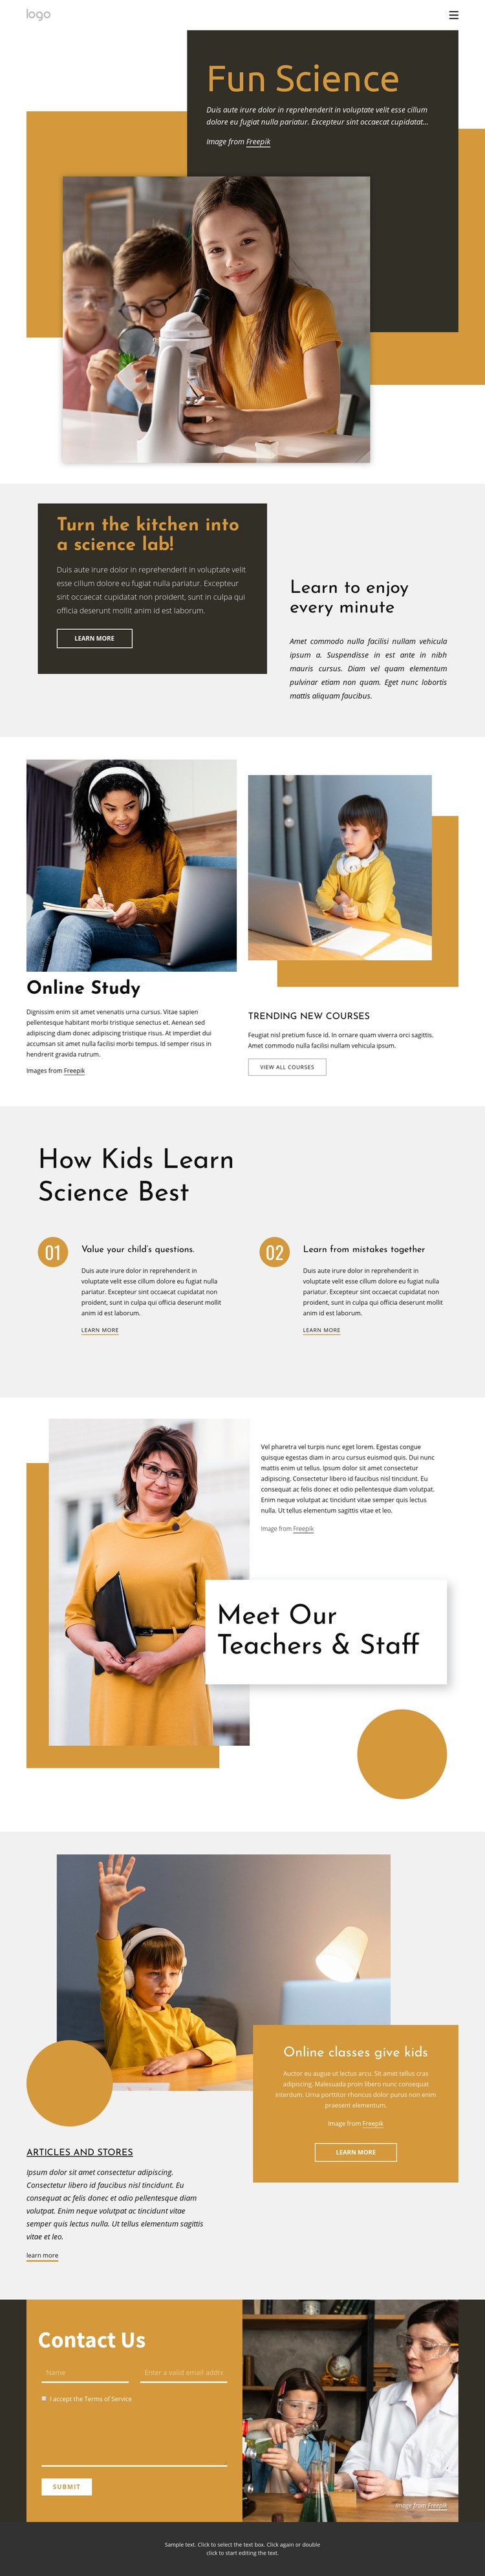 Cool science project Web Page Designer